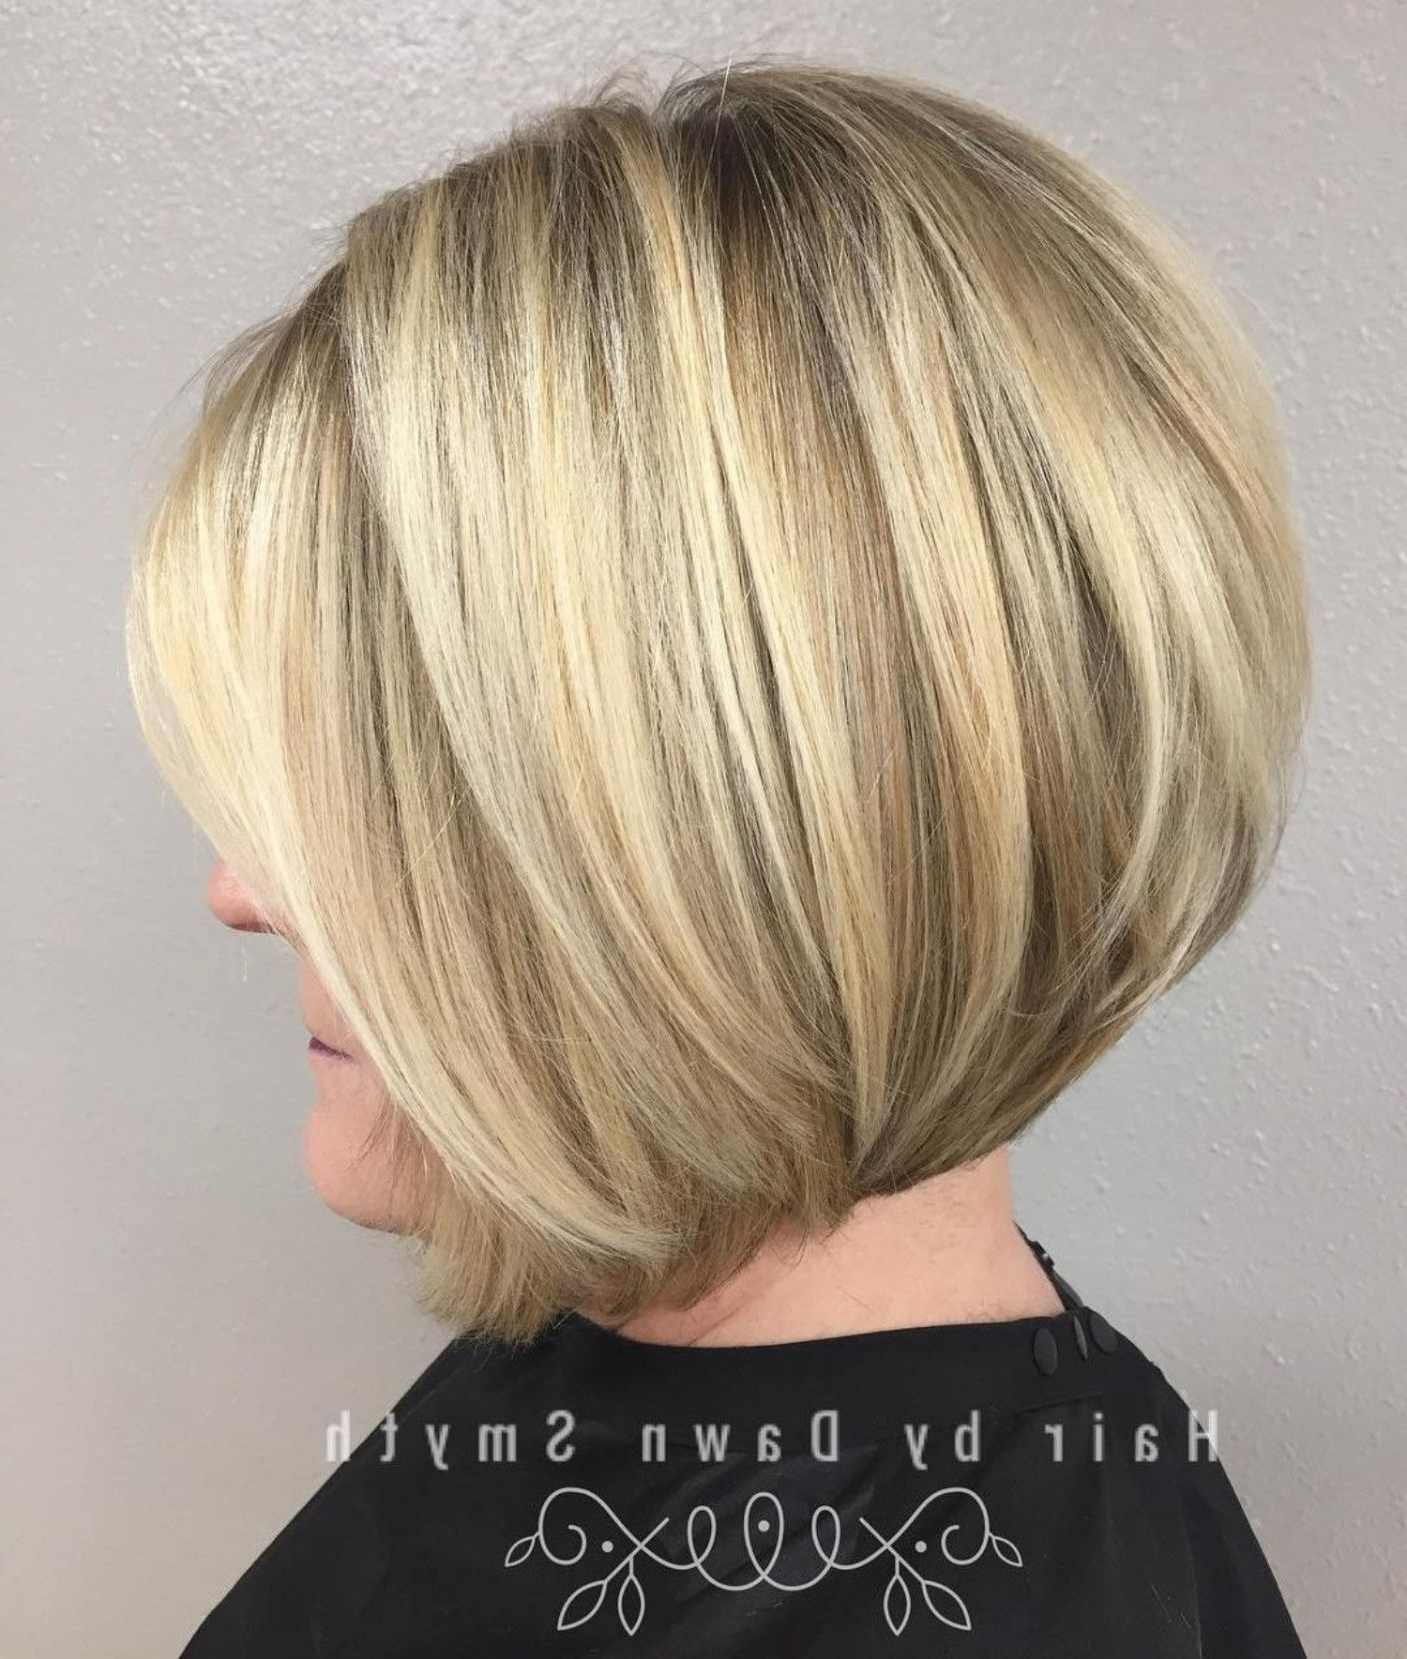 90 Classy And Simple Short Hairstyles For Women Over 50 In 2018 Intended For Rounded Bob Hairstyles With Stacked Nape (View 7 of 20)